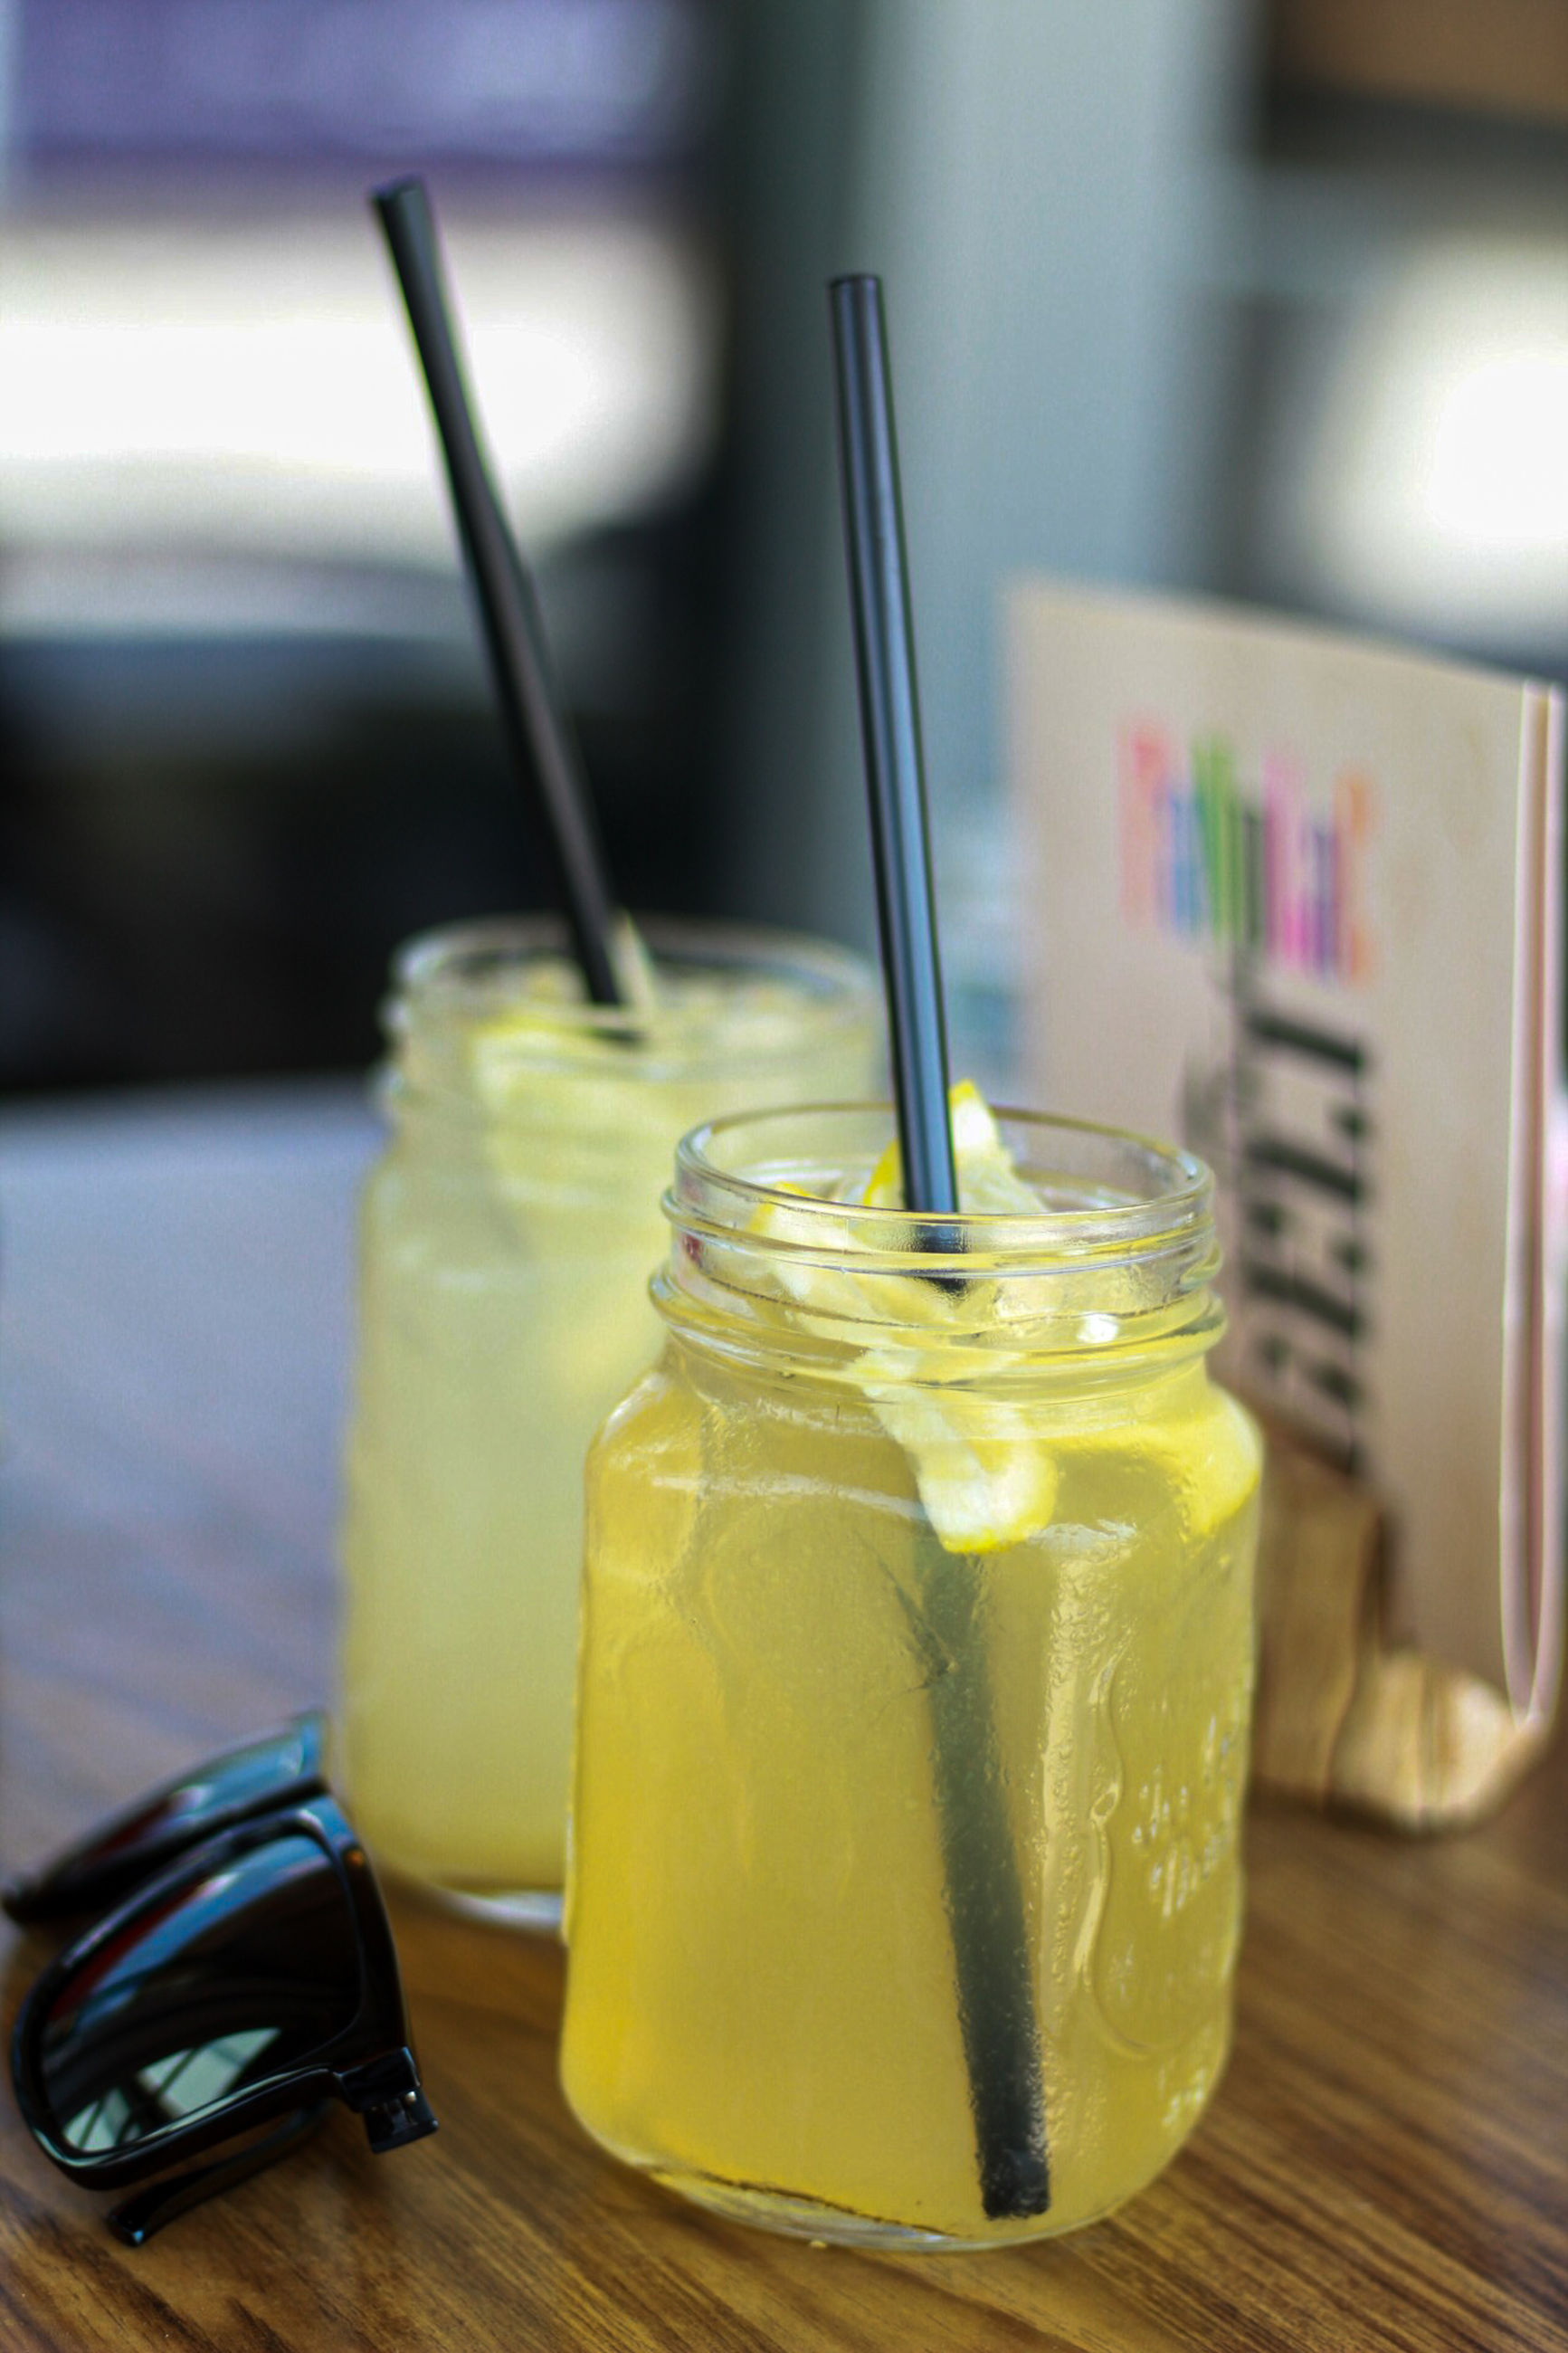 food and drink, food, jar, drink, refreshment, straw, freshness, table, fruit, healthy eating, drinking straw, still life, focus on foreground, indoors, close-up, container, wellbeing, yellow, glass, technology, no people, temptation